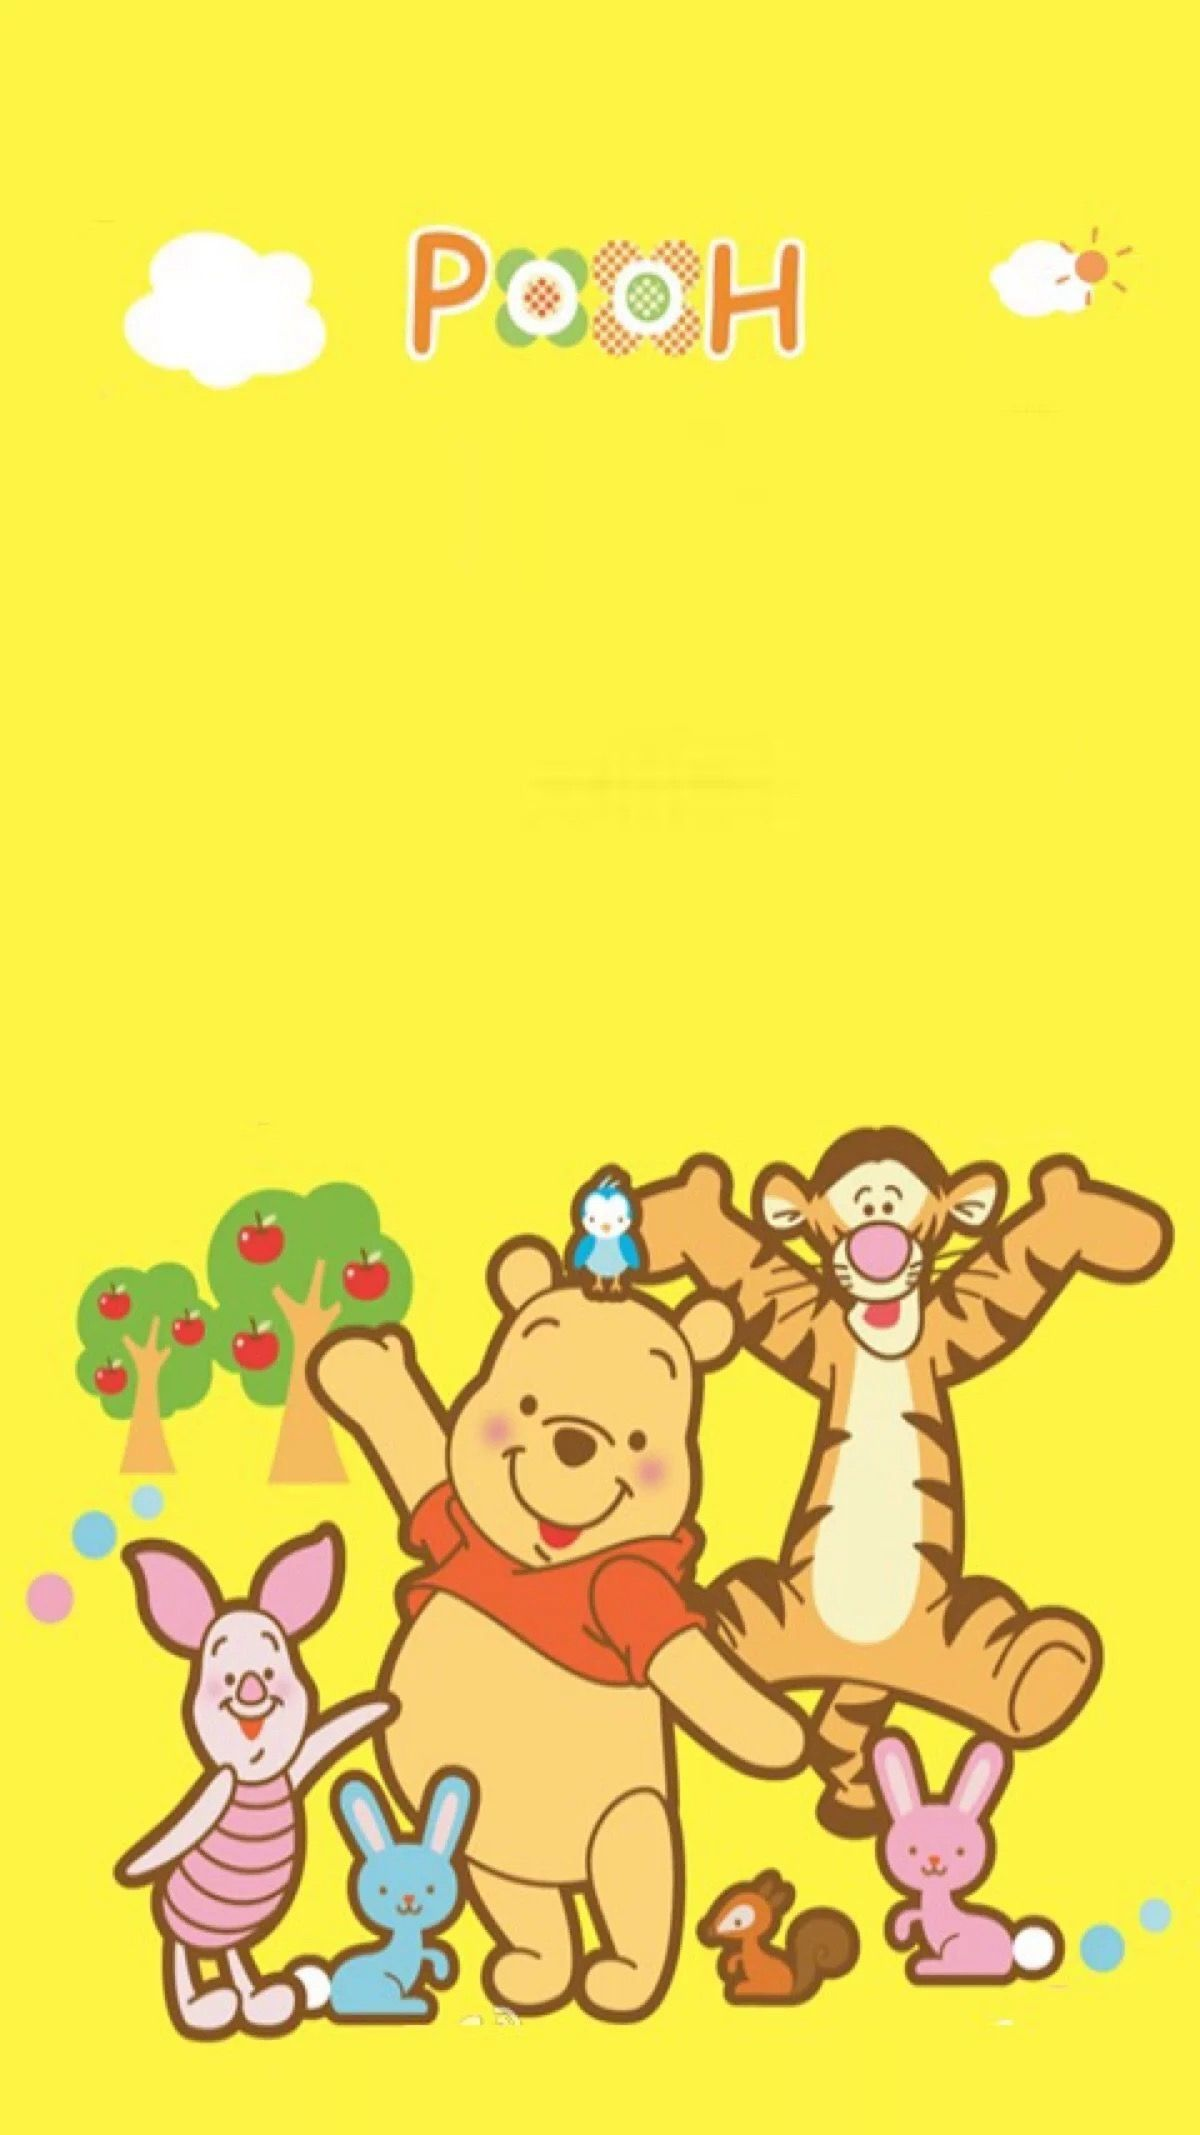 Pooh Wallpaper Iphone 6